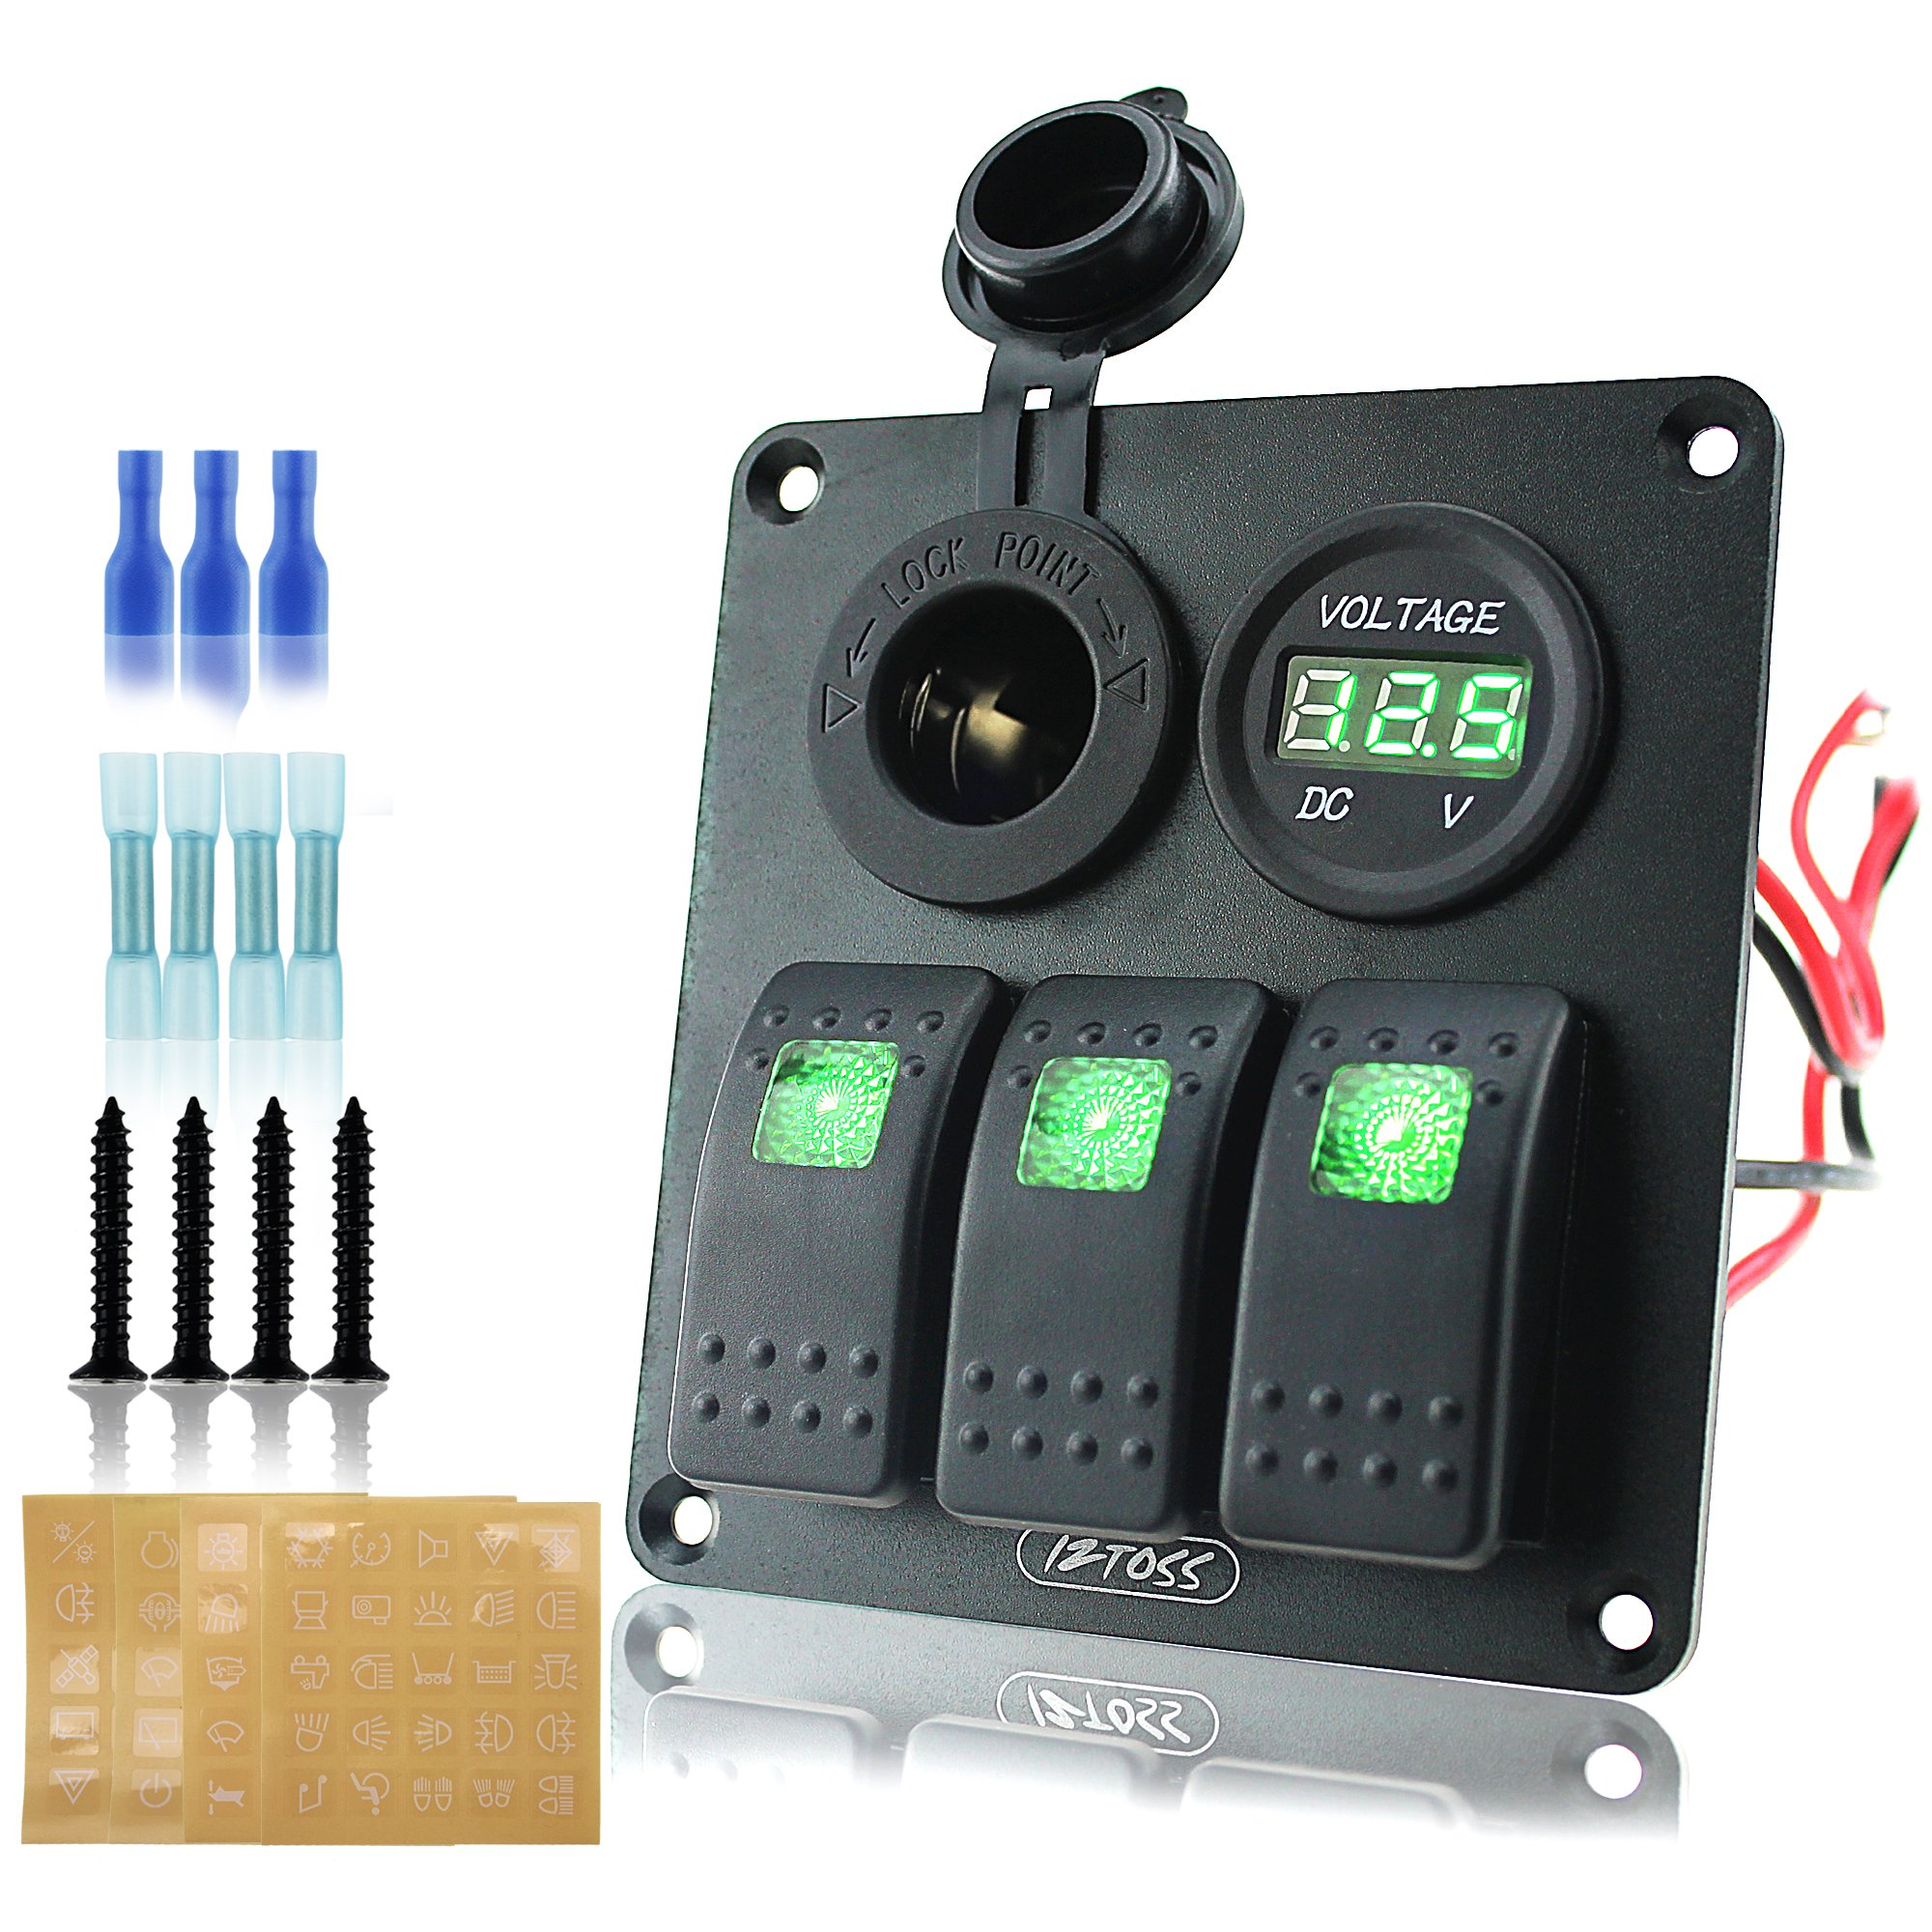 Ambuker 3 gang rocker switch panel with power socket 3.1A and voltmeter wiring kits and Decal Sticker Labels DC12V/24V for Marine Boat Car Rv Vehicles Truck by Ambuker